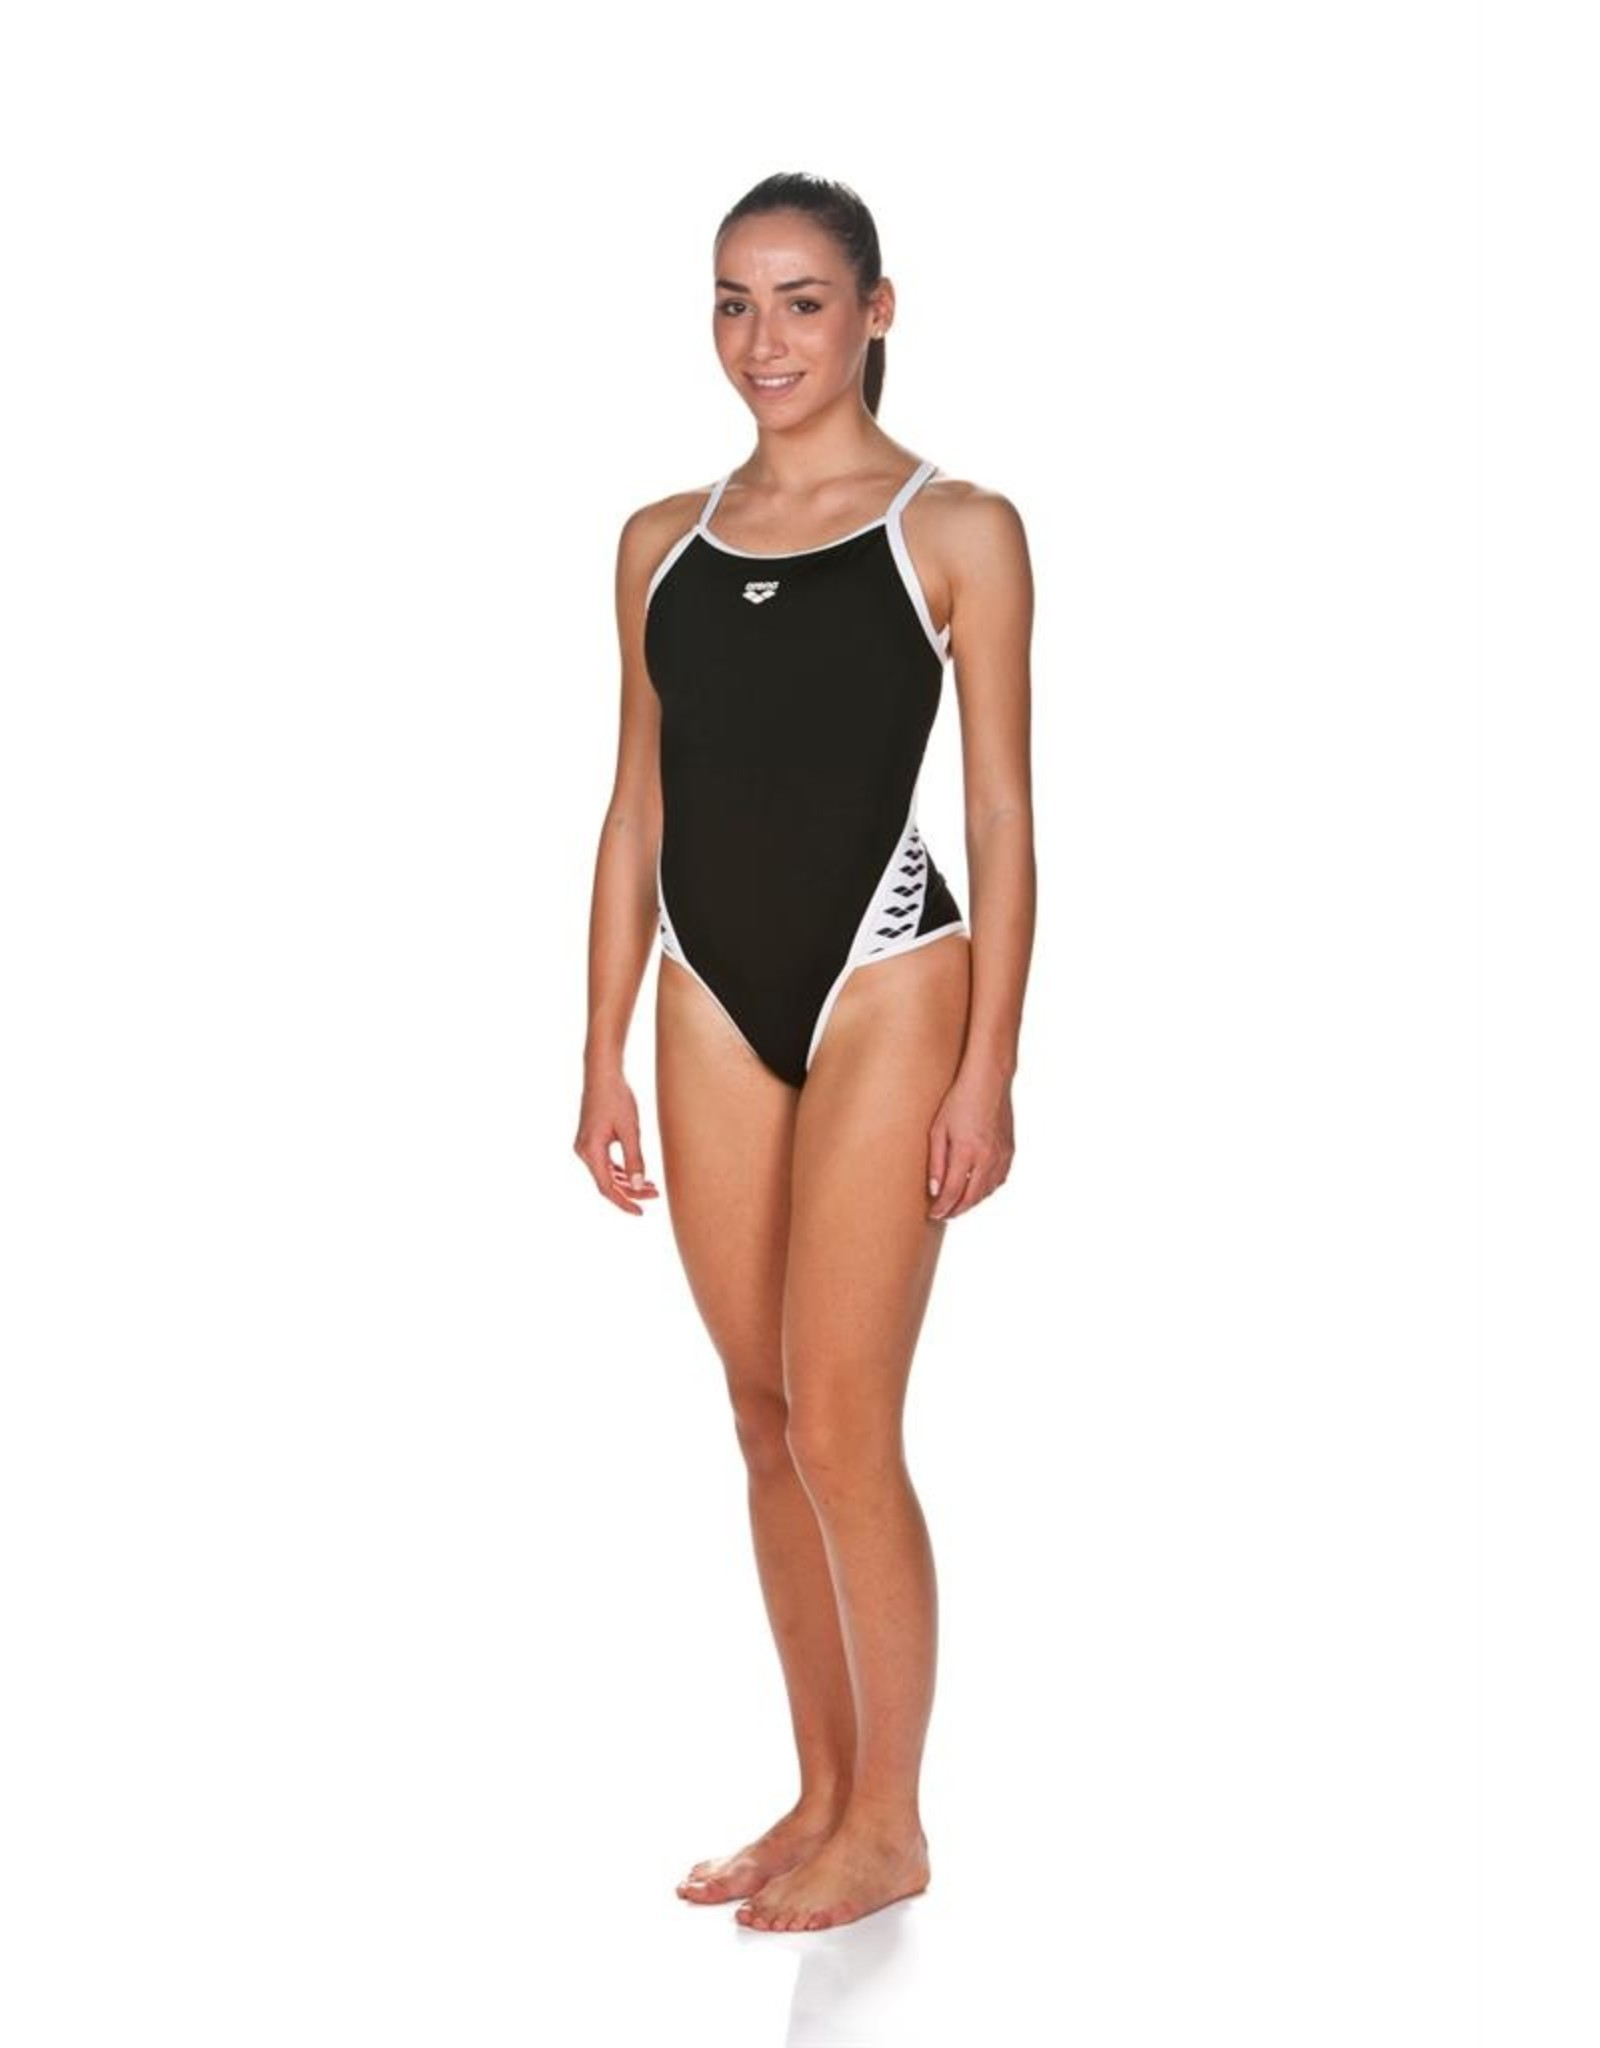 ARENA ARENA TEAM STRIPE SUPER FLY BACK ONE PIECE